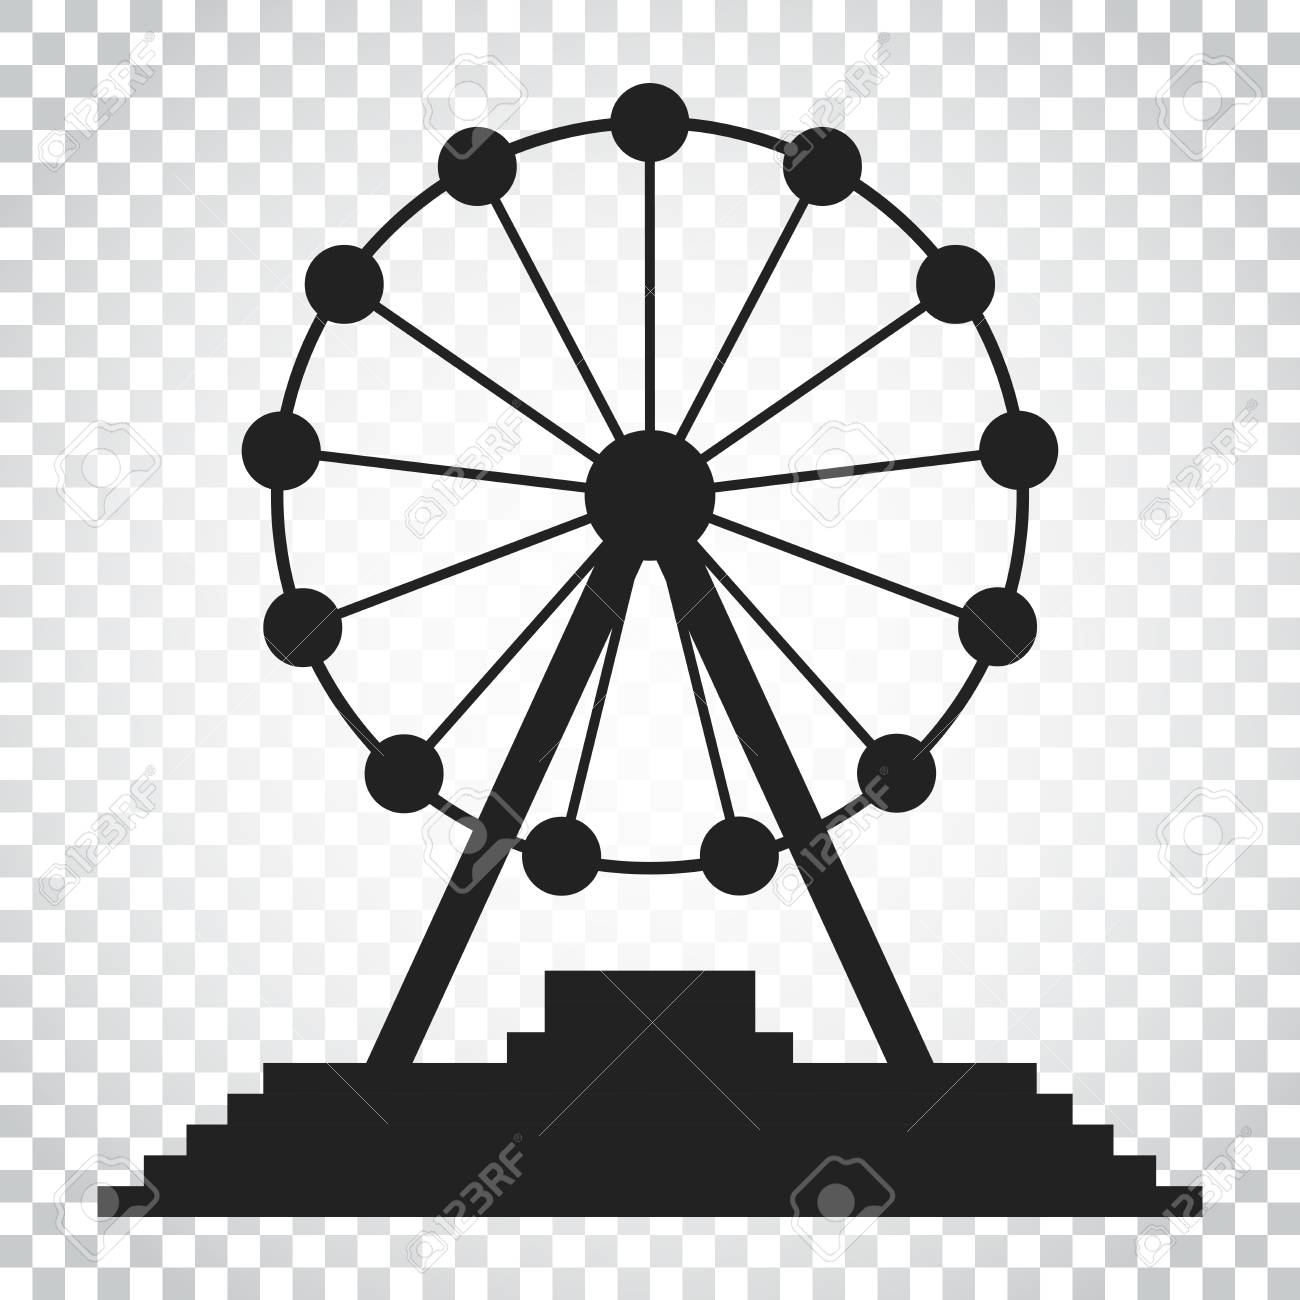 Ferris Wheel Vector Icon Carousel In Park Icon Amusement Ride Royalty Free Cliparts Vectors And Stock Illustration Image 82986732